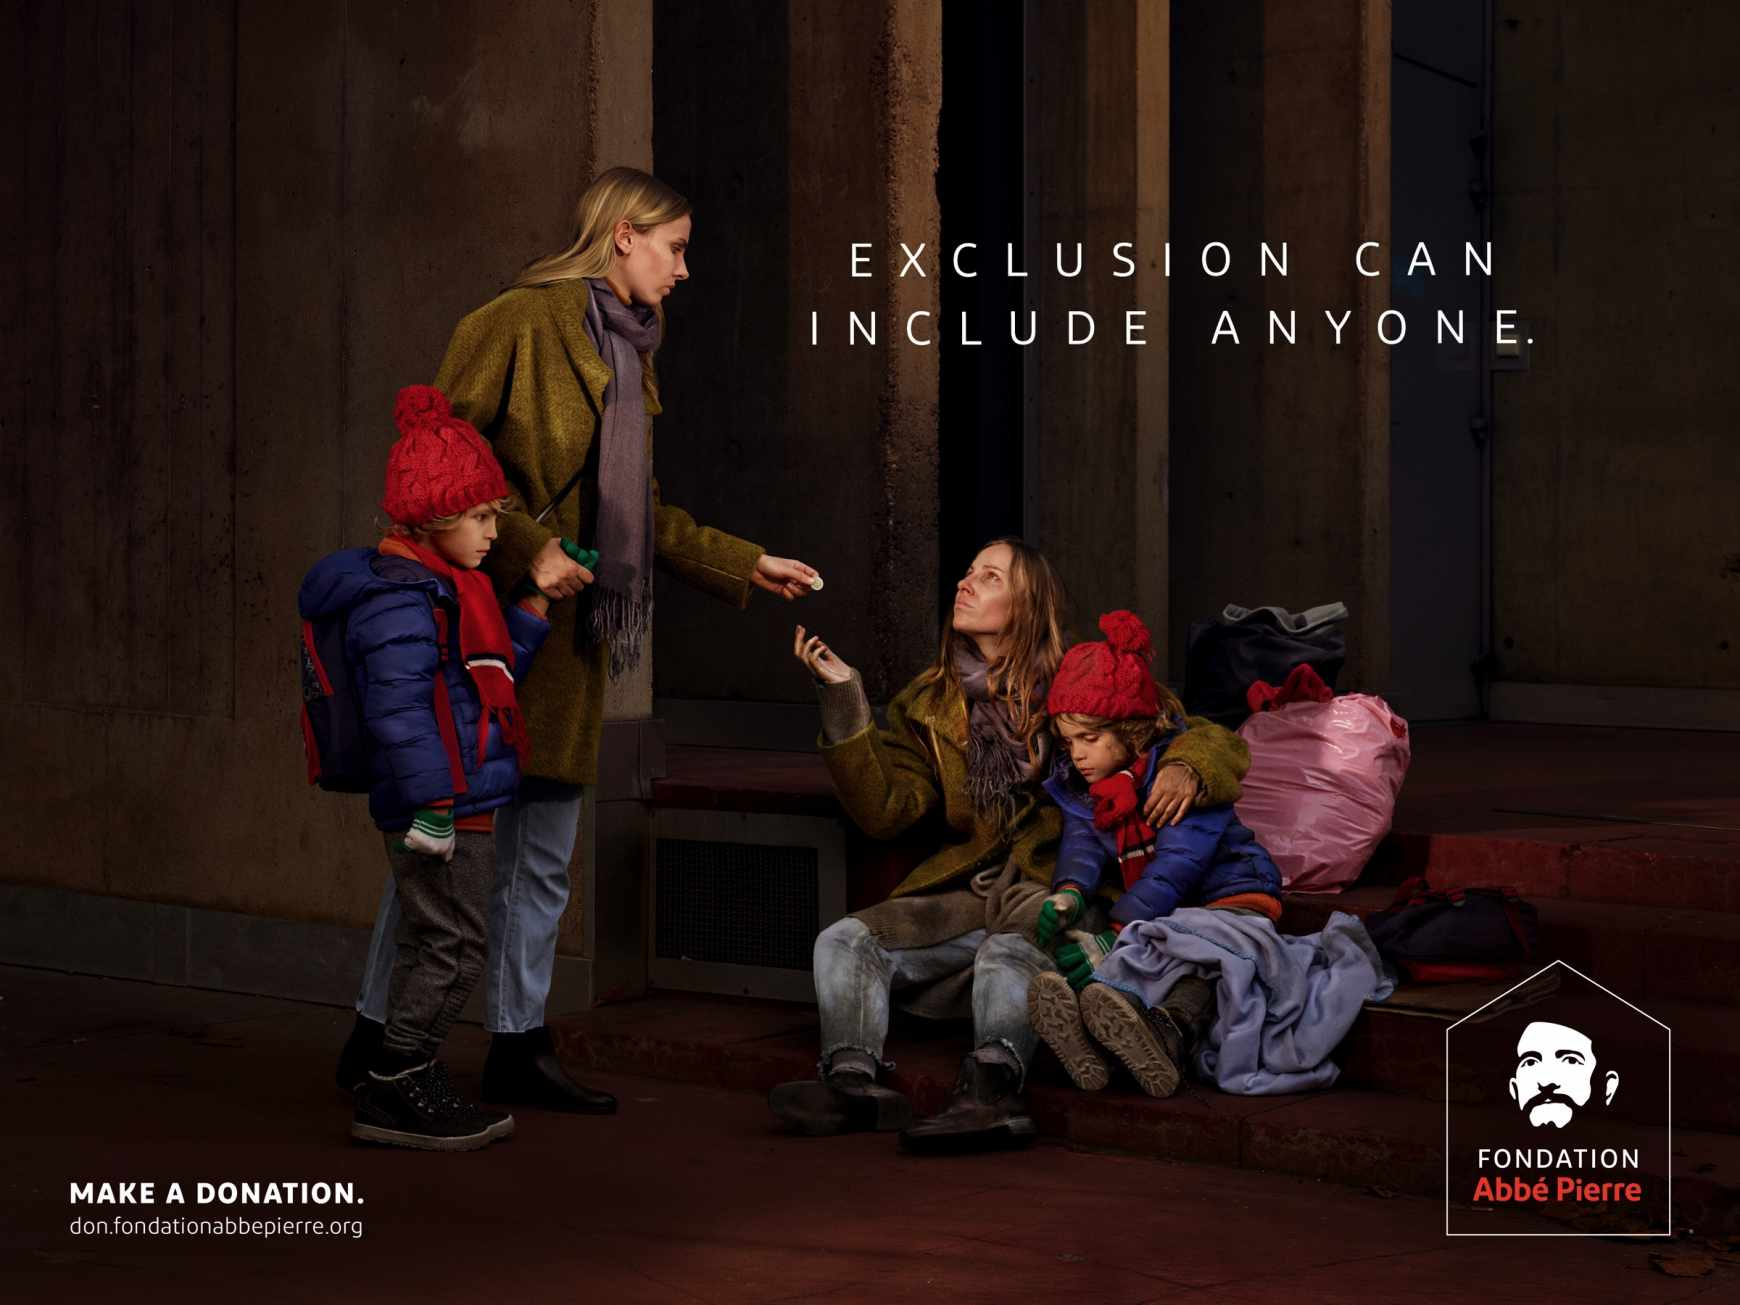 Fondation Abbé Pierre Outdoor Ad - Exclusion can include anyone, 3